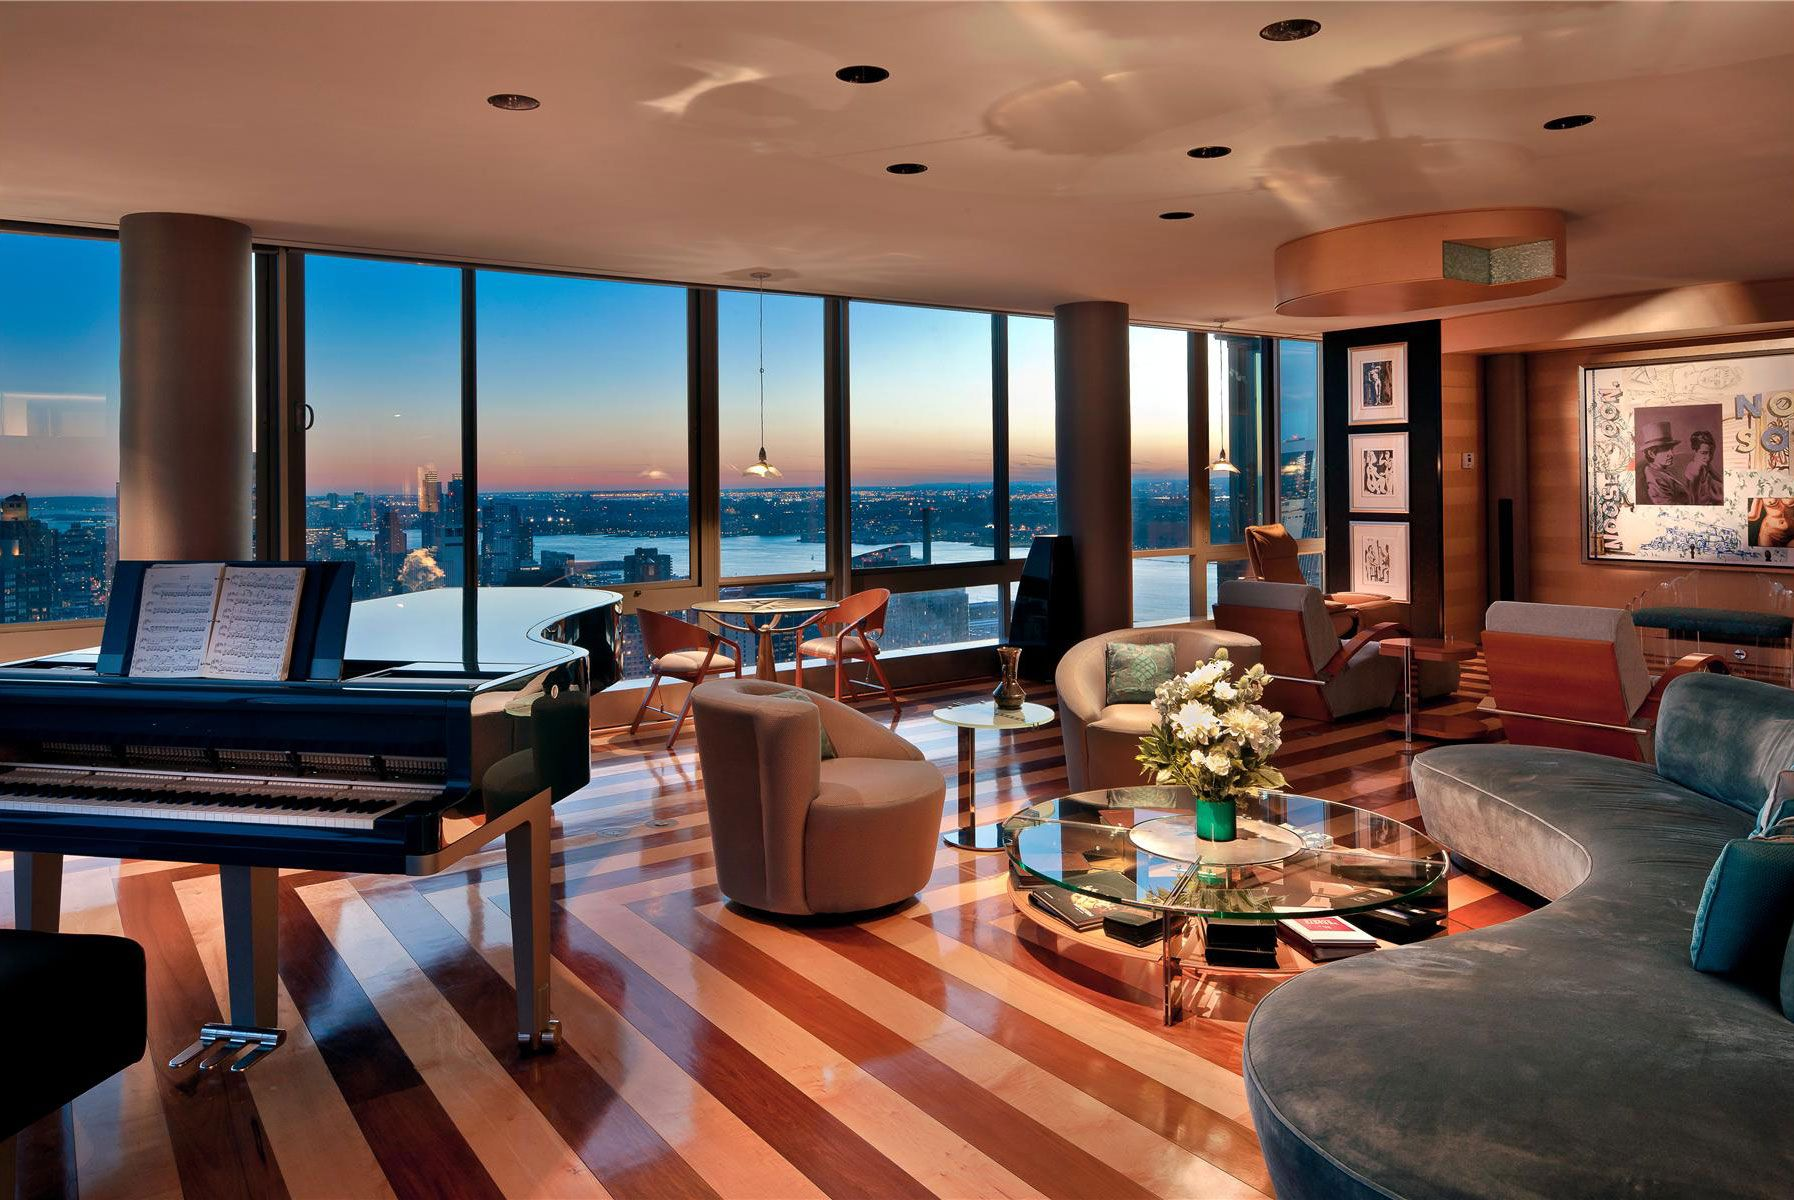 The gartner penthouse for sale in new york city for Penthouse apartments in nyc